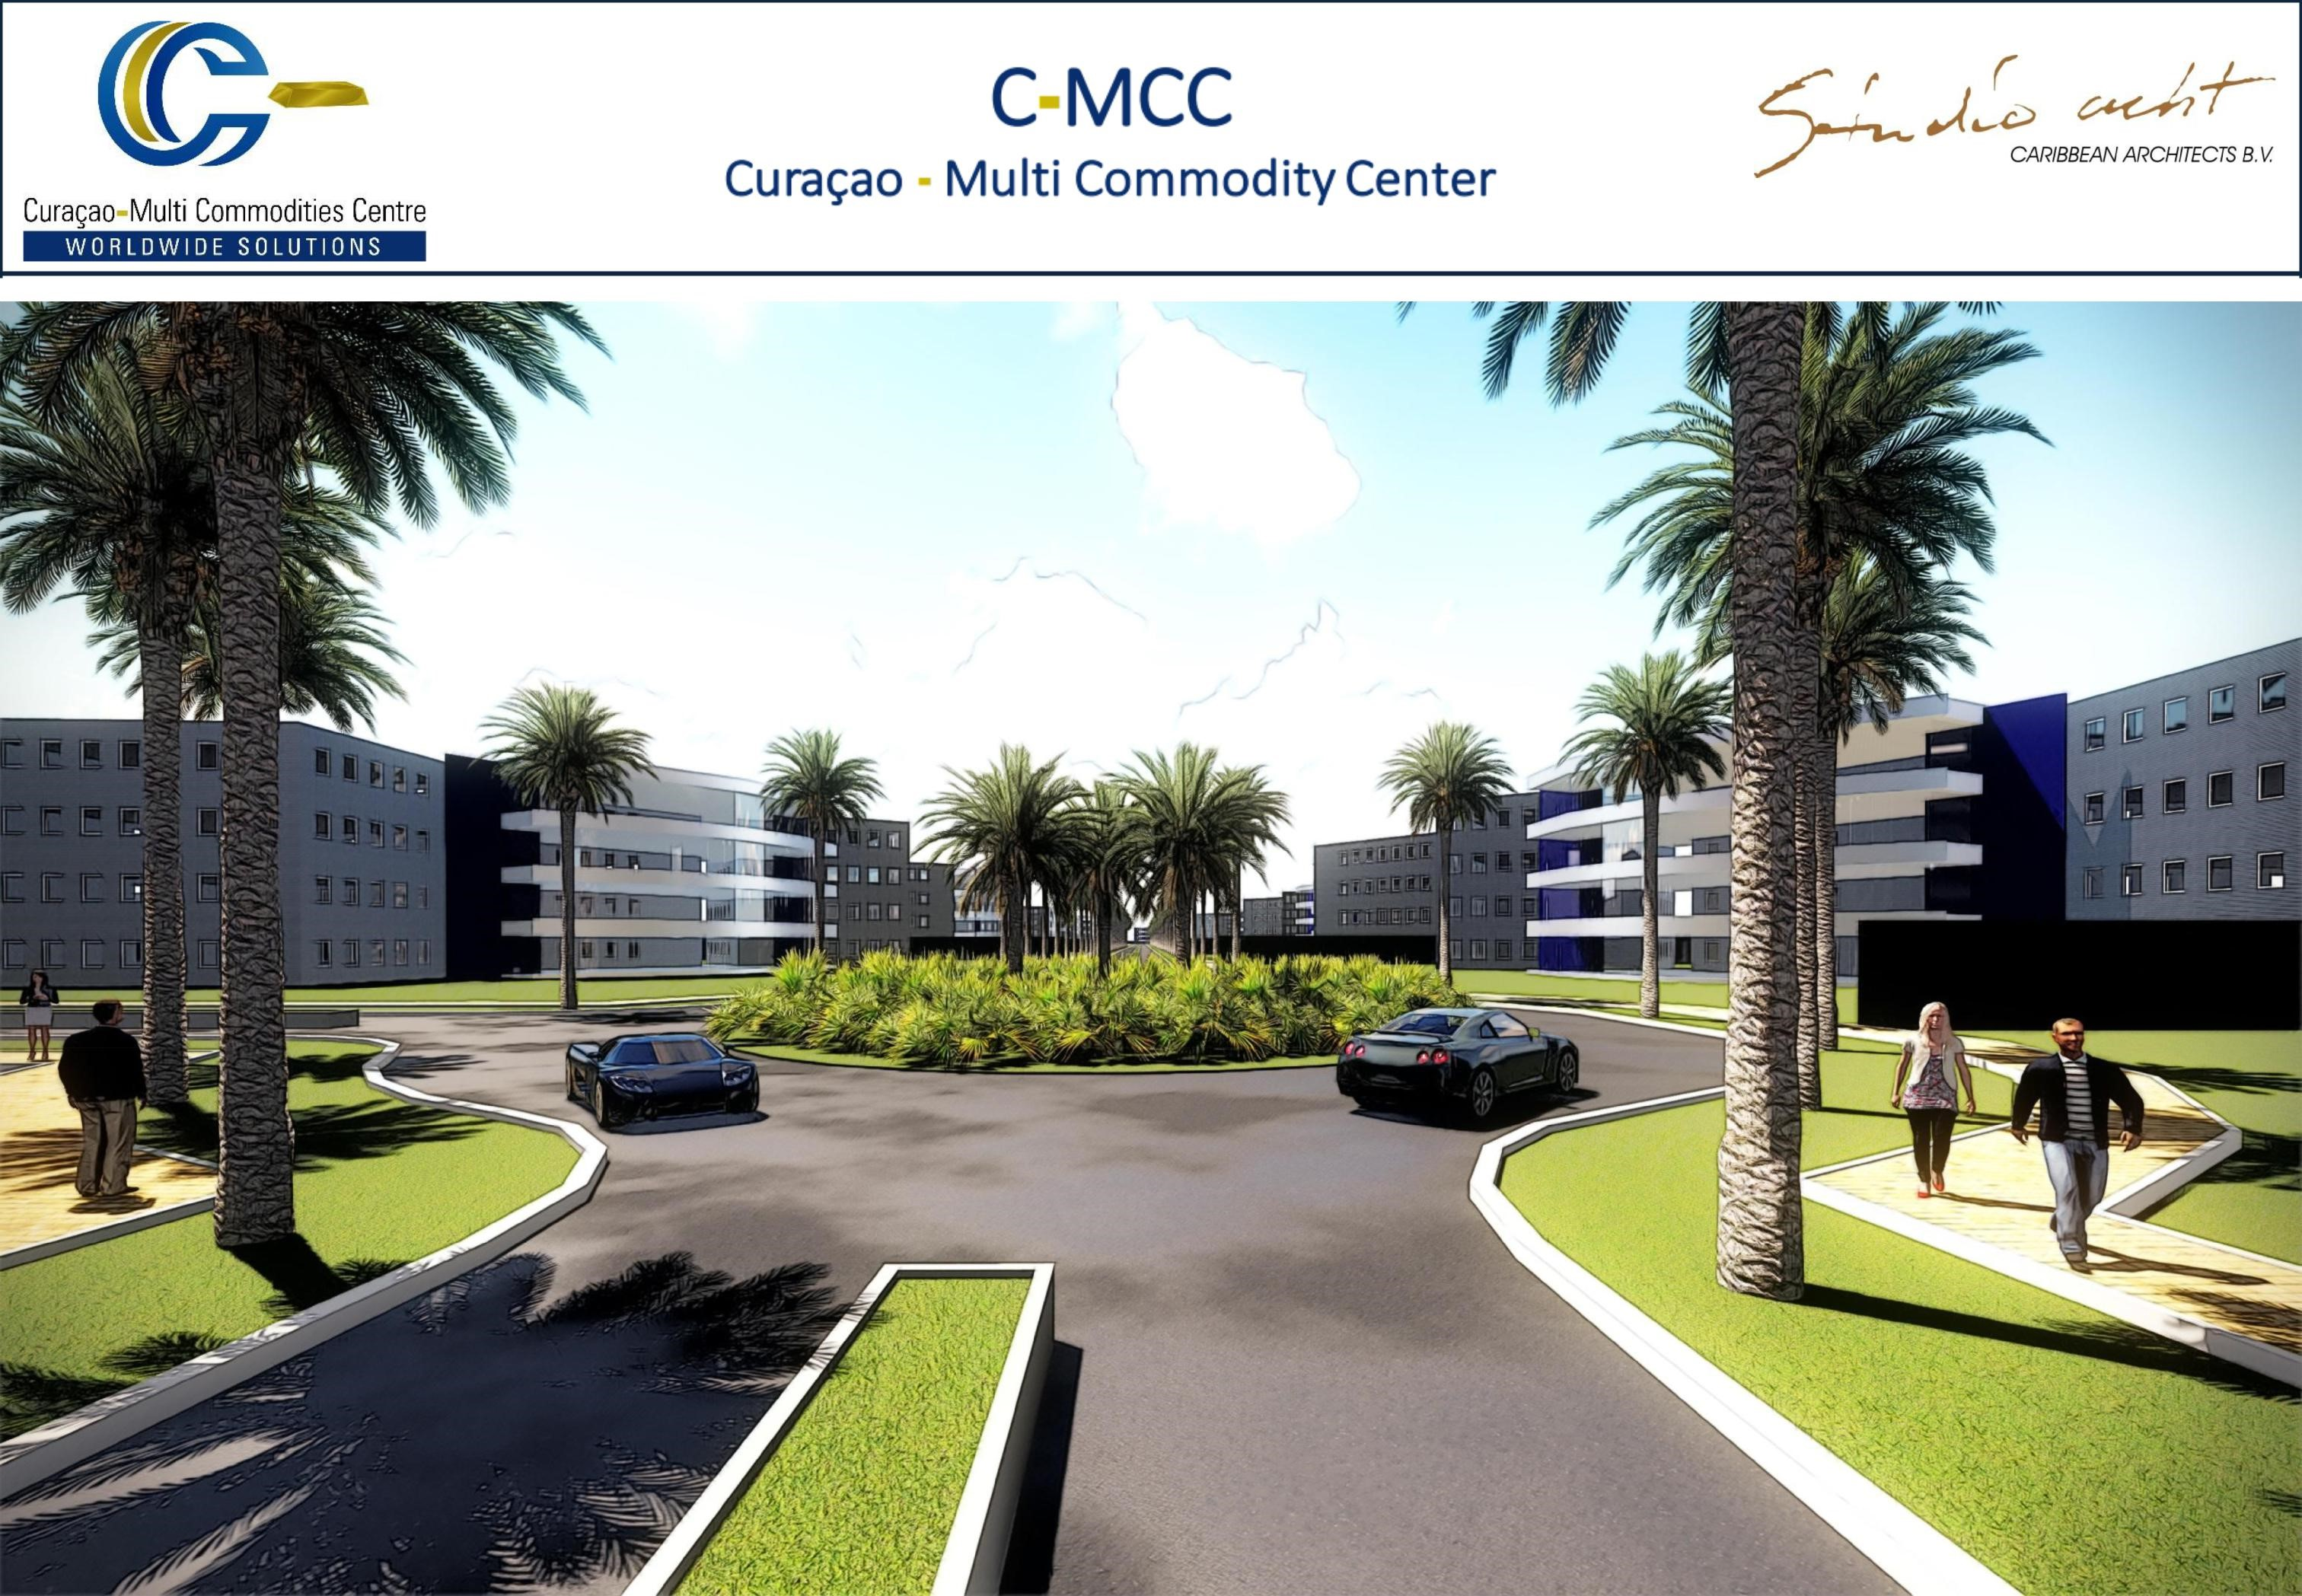 C-MCC Curacao Airport FTZ Site Elevations